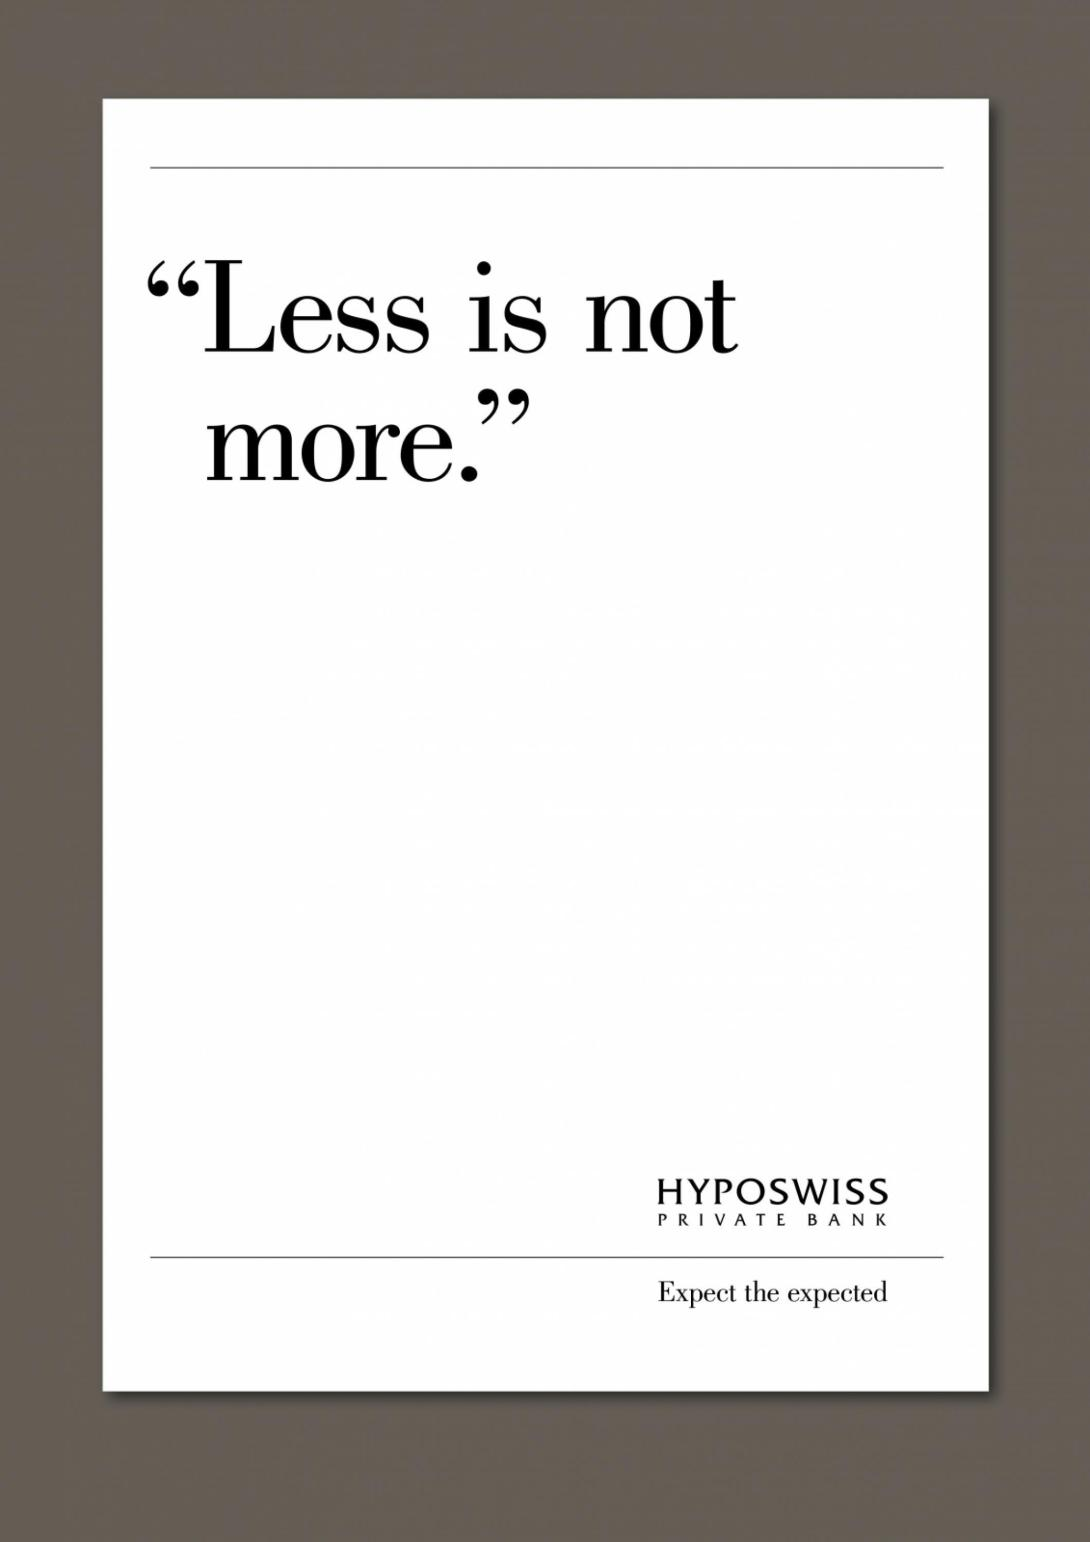 hyposwiss-private-bank-you-and-us-promises-luck-risk-fast-money-profit-less-is-not-more-print-223407-adeevee